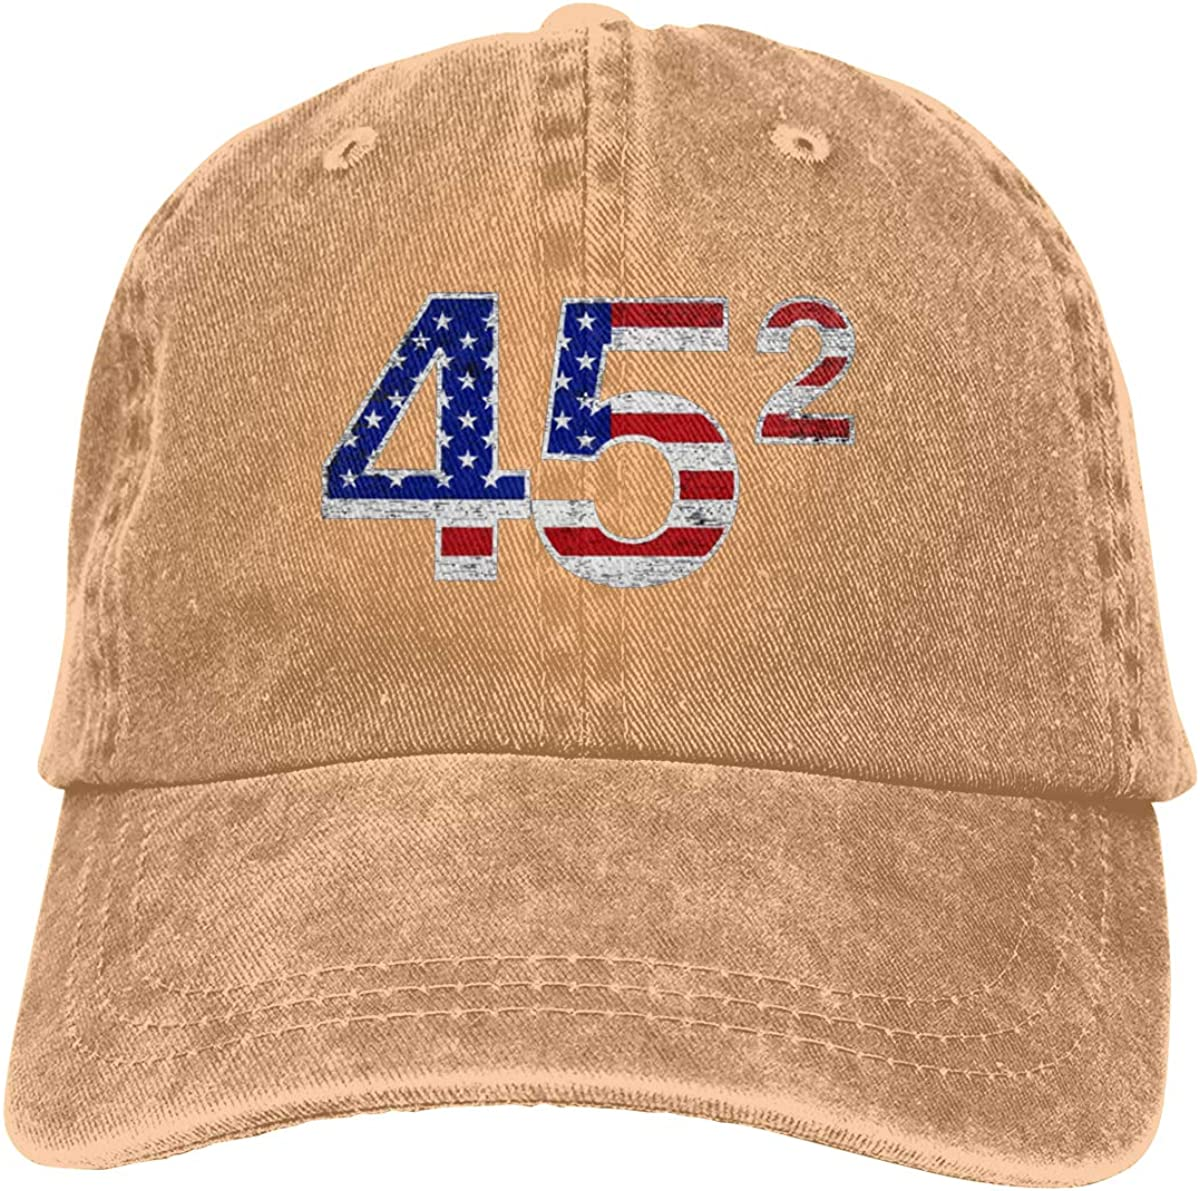 Trump 45 Squared 2 Term Presidency Brag Badge Unisex Adult Denim Hats Cowboy Hat Dad Hat Driver Cap